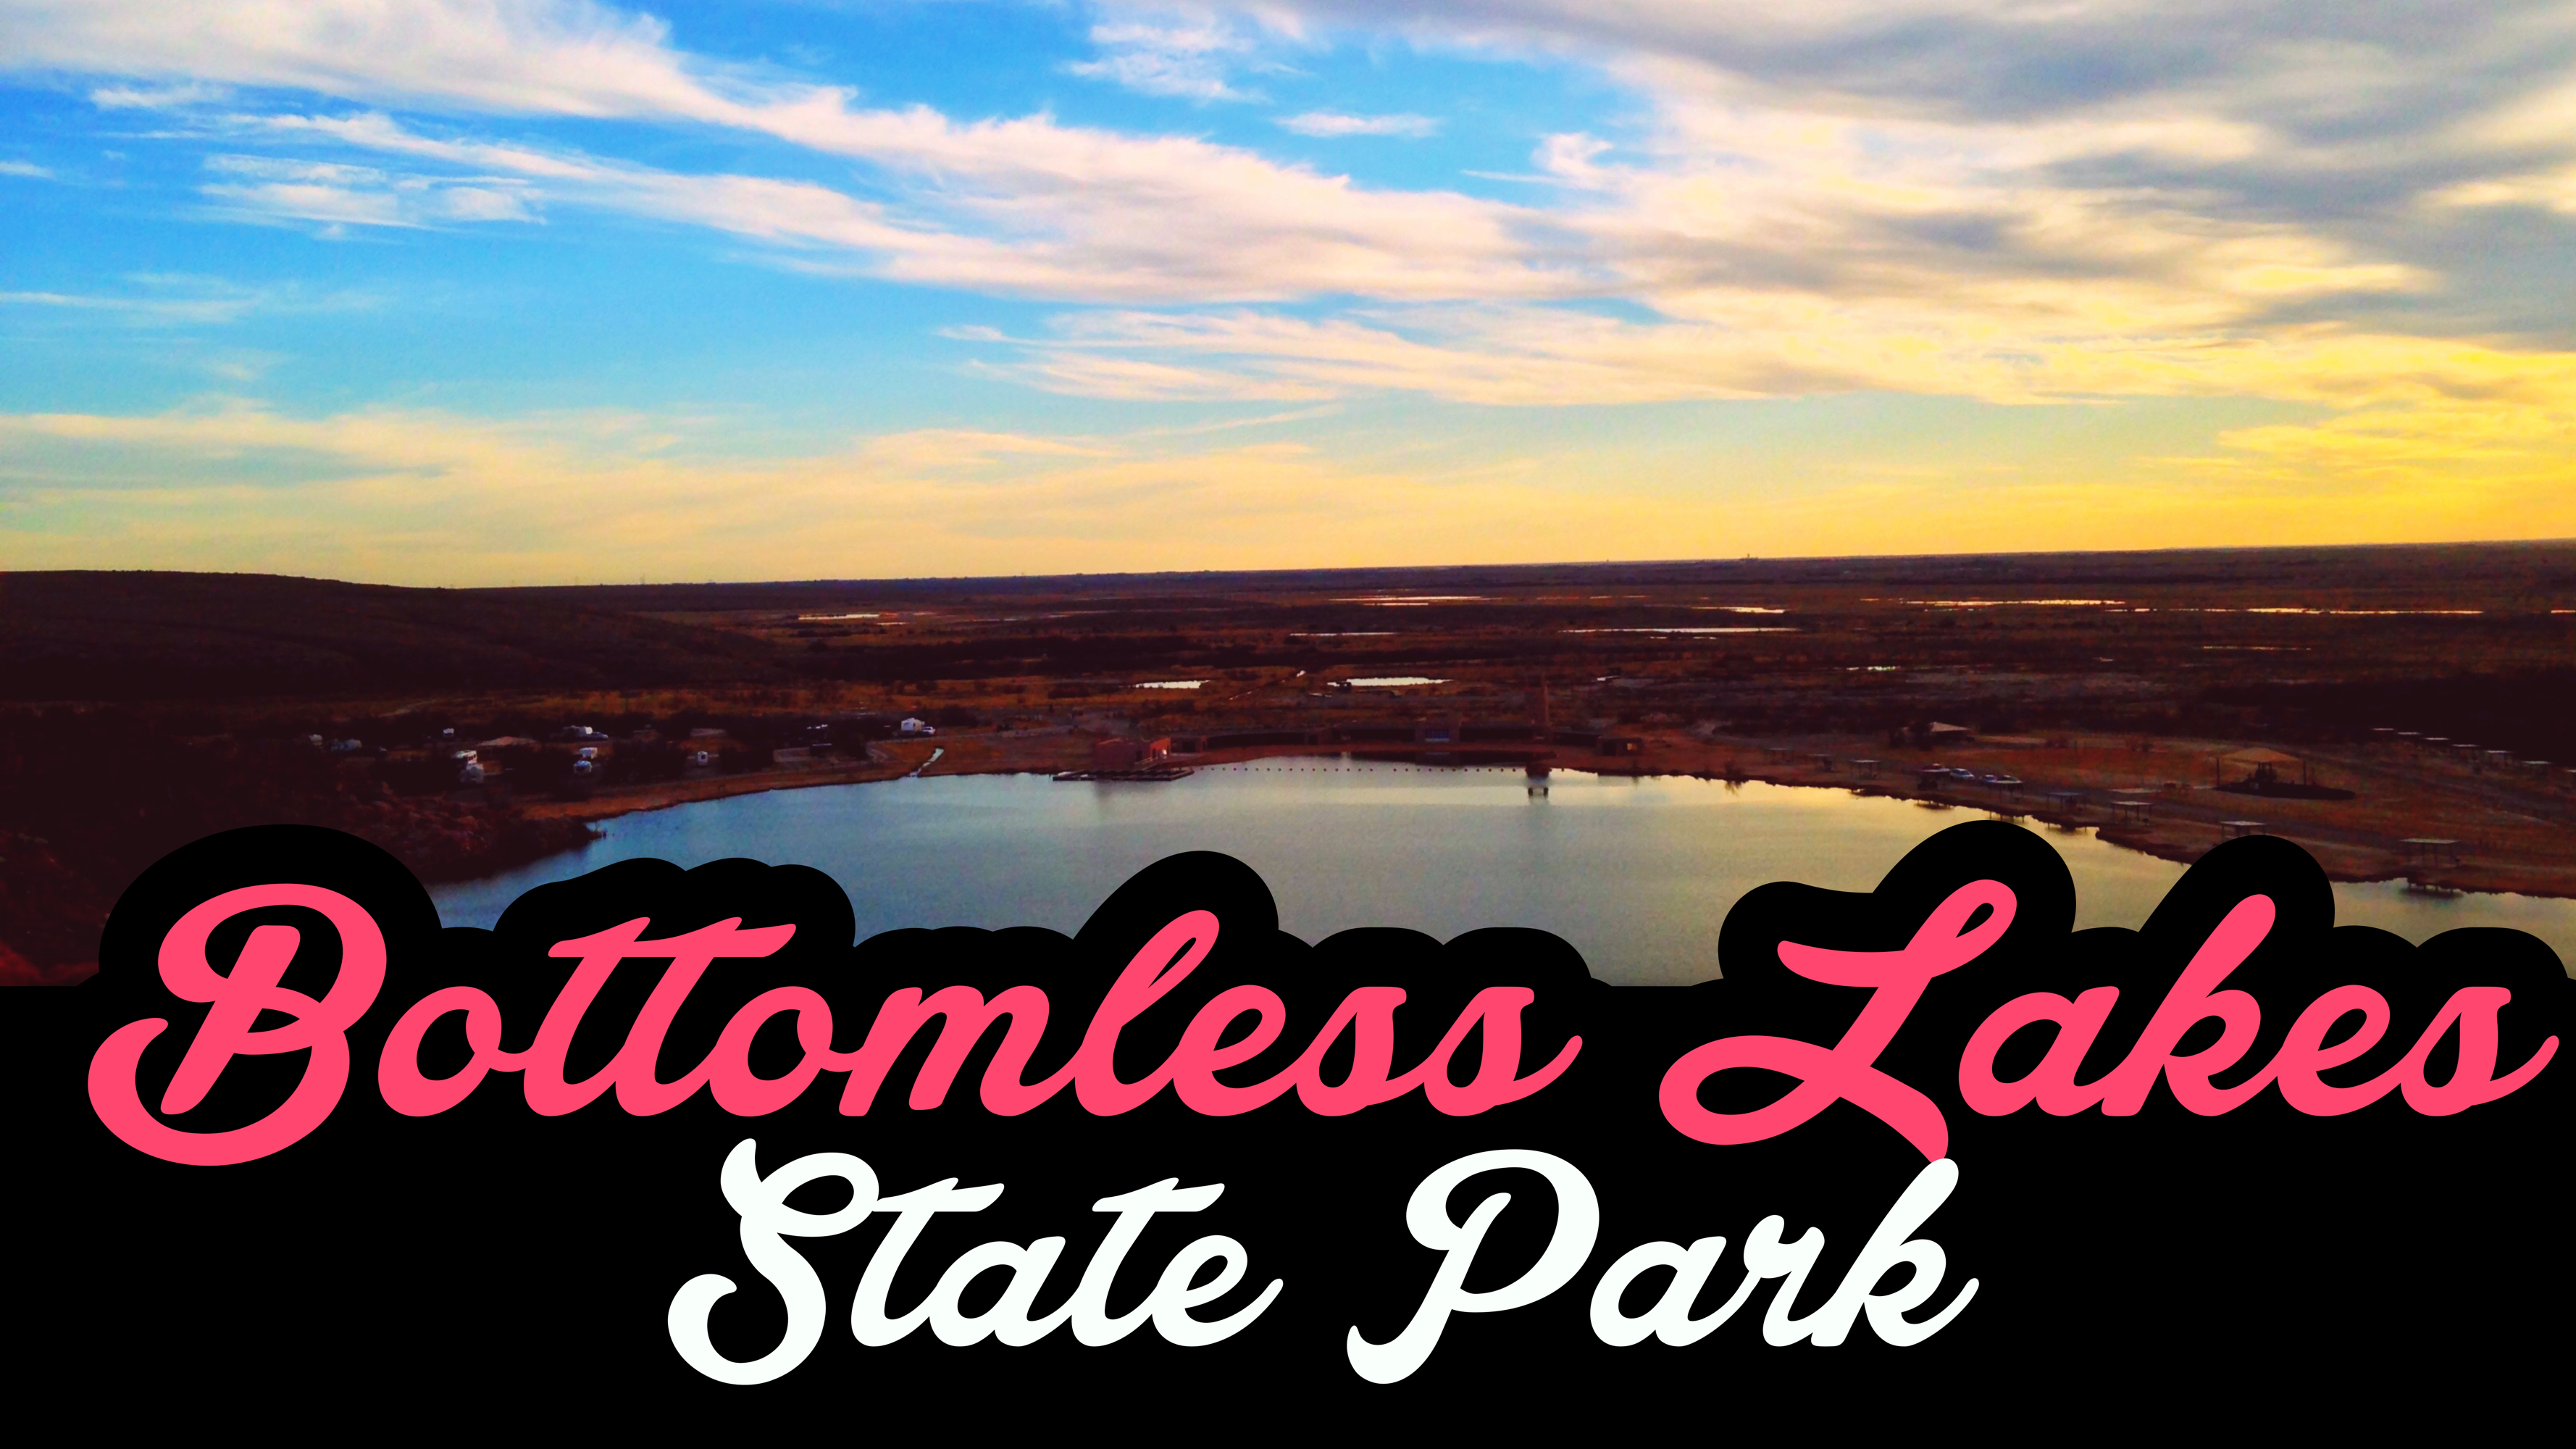 Bottomless Lakes State Park – Roswell, New Mexico